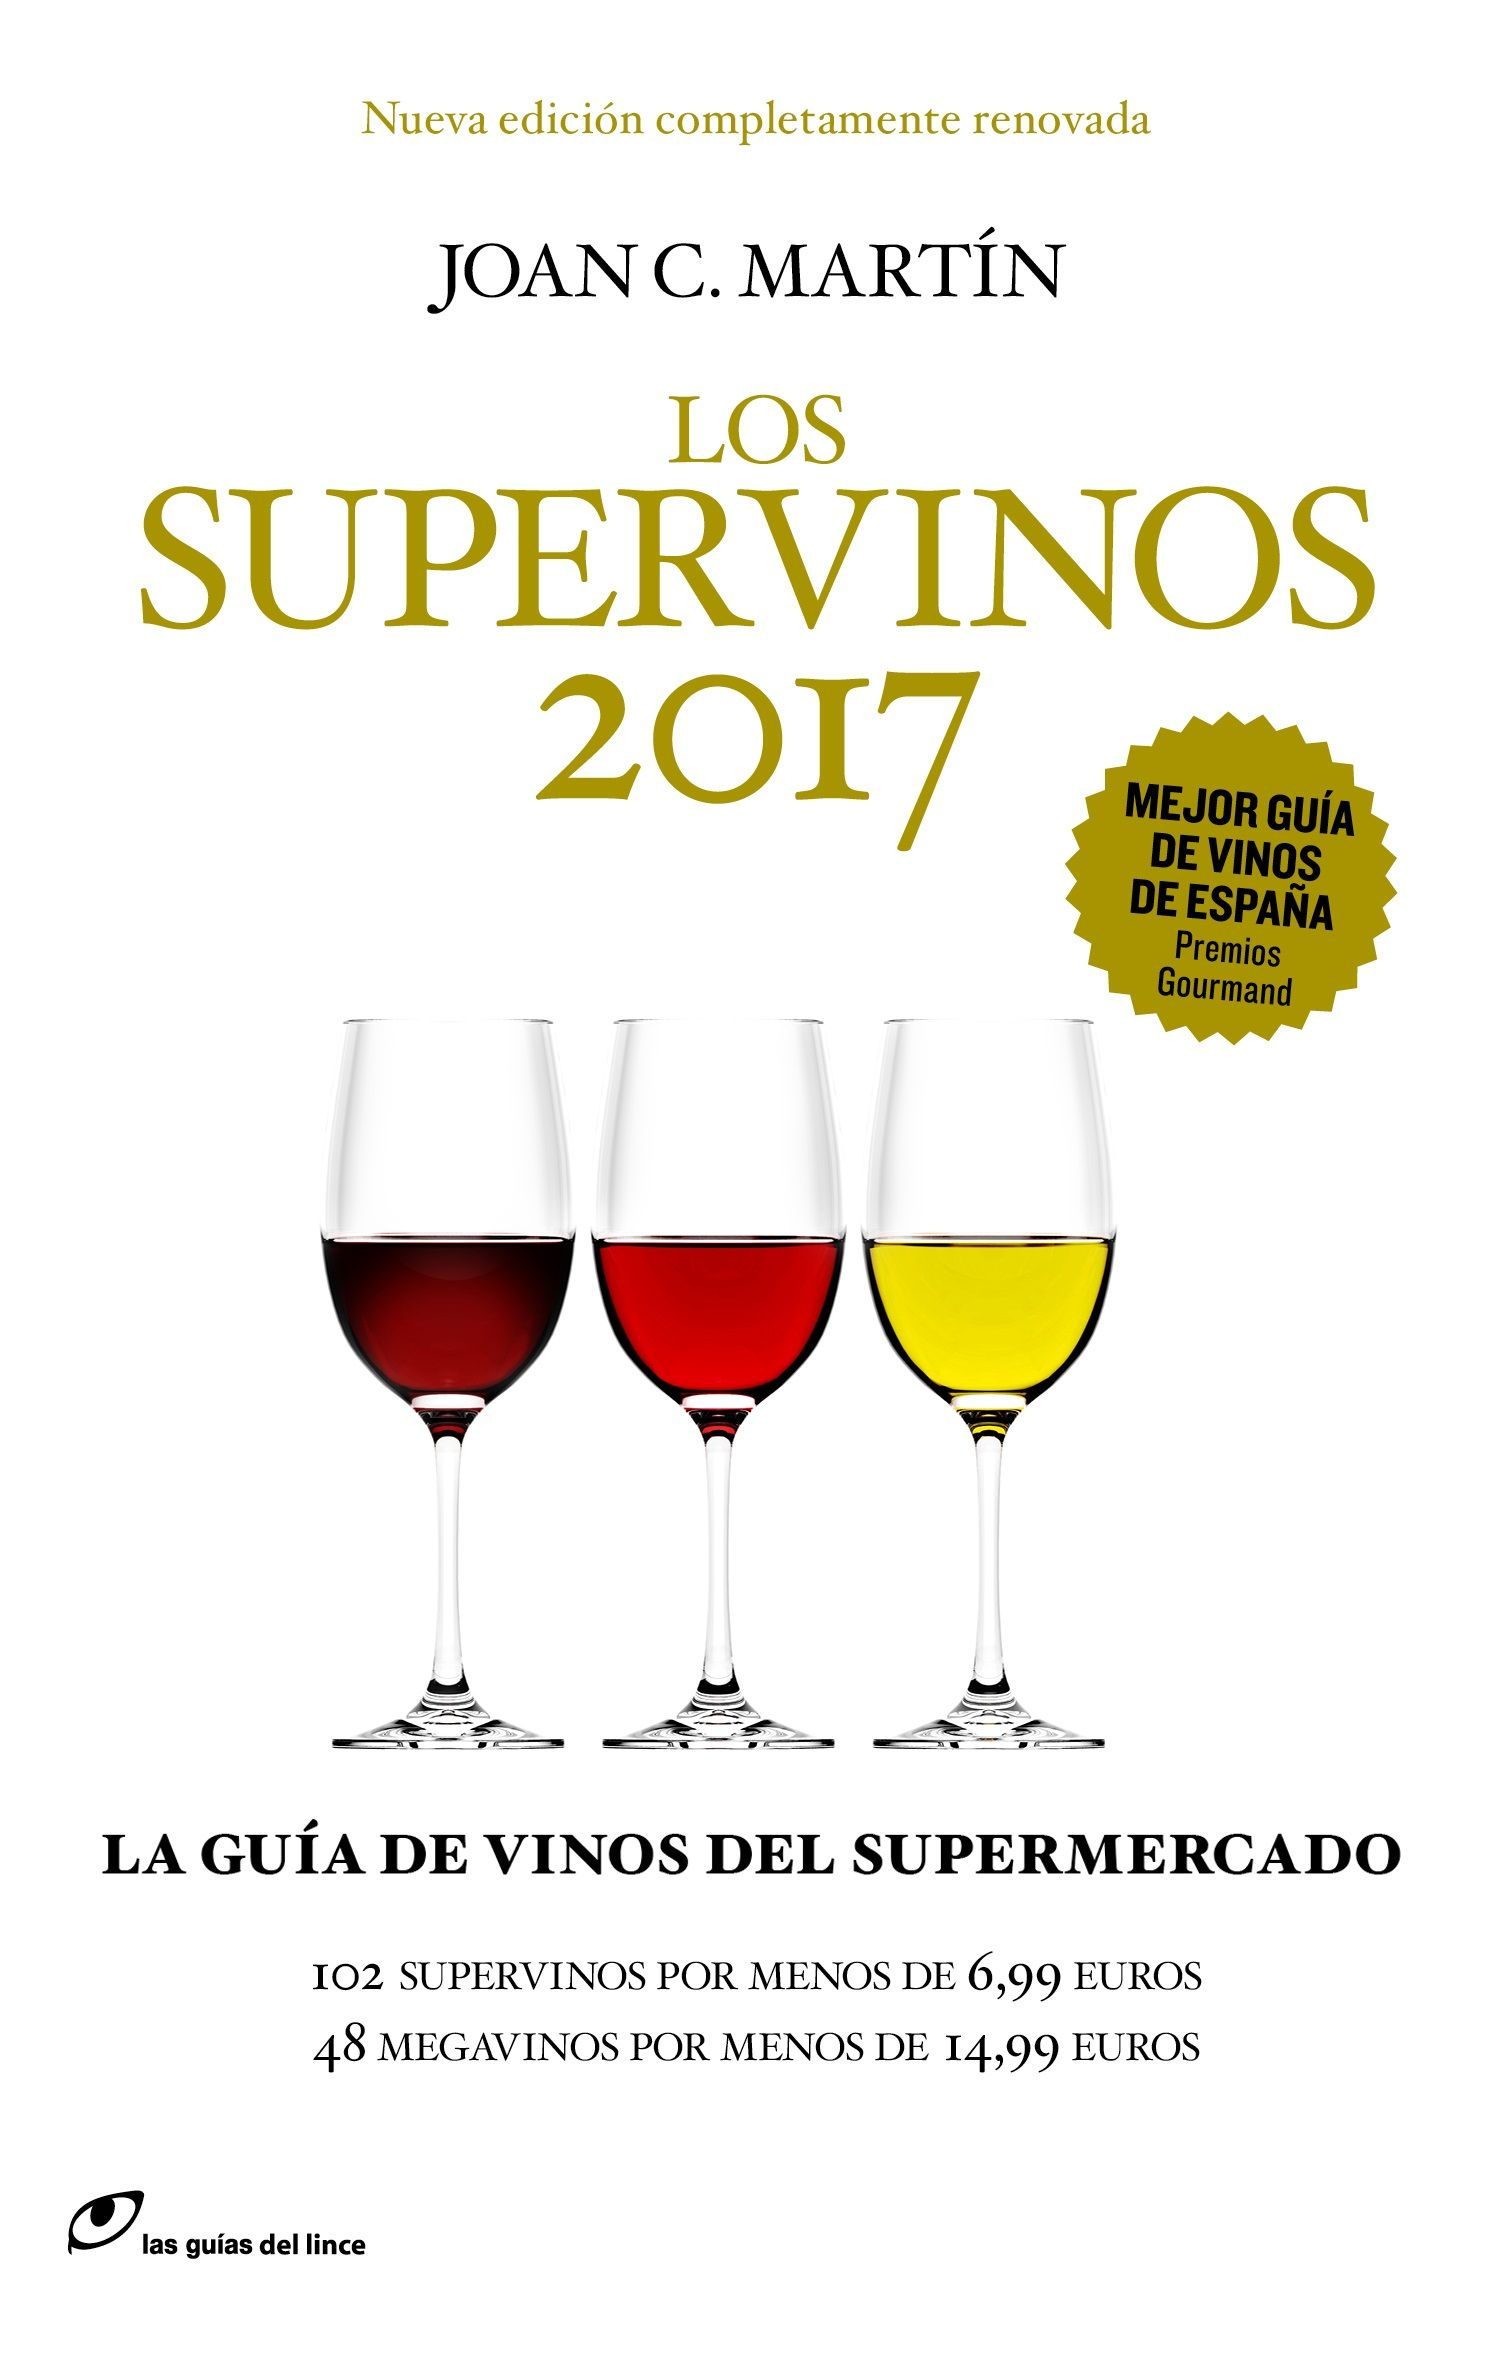 LOS SUPERVINOS 2017